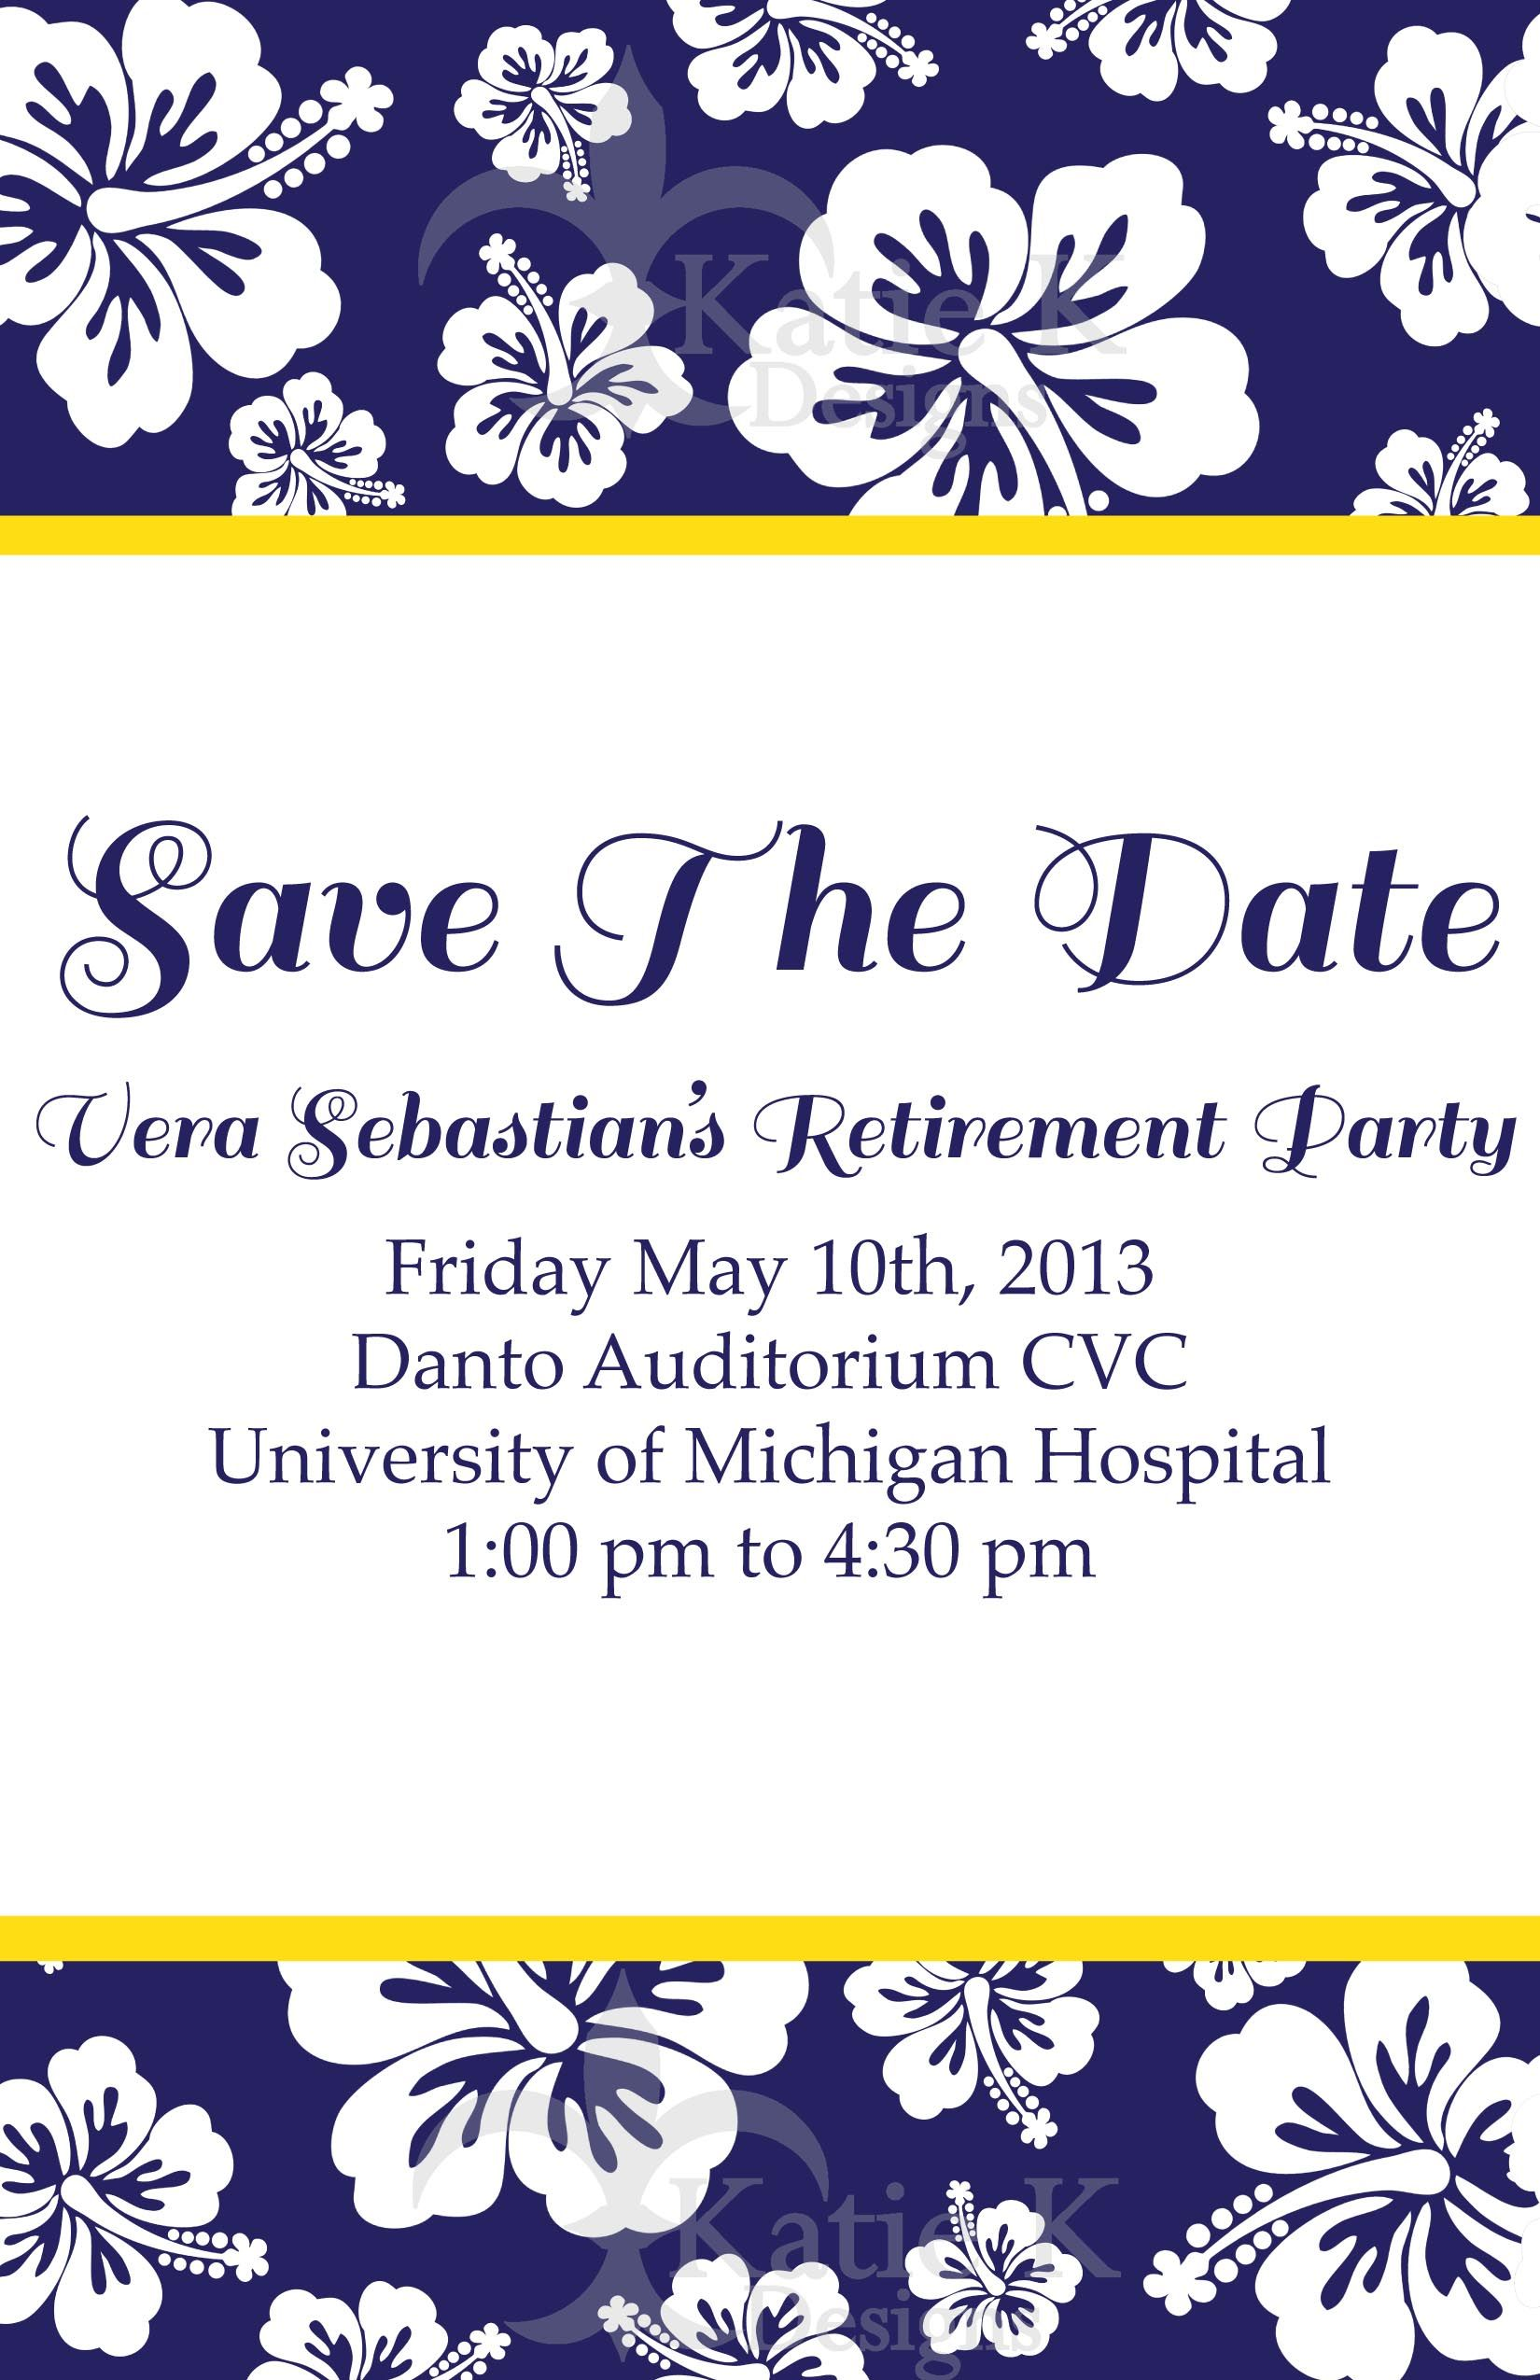 save the date invitations for a retirement party at the university